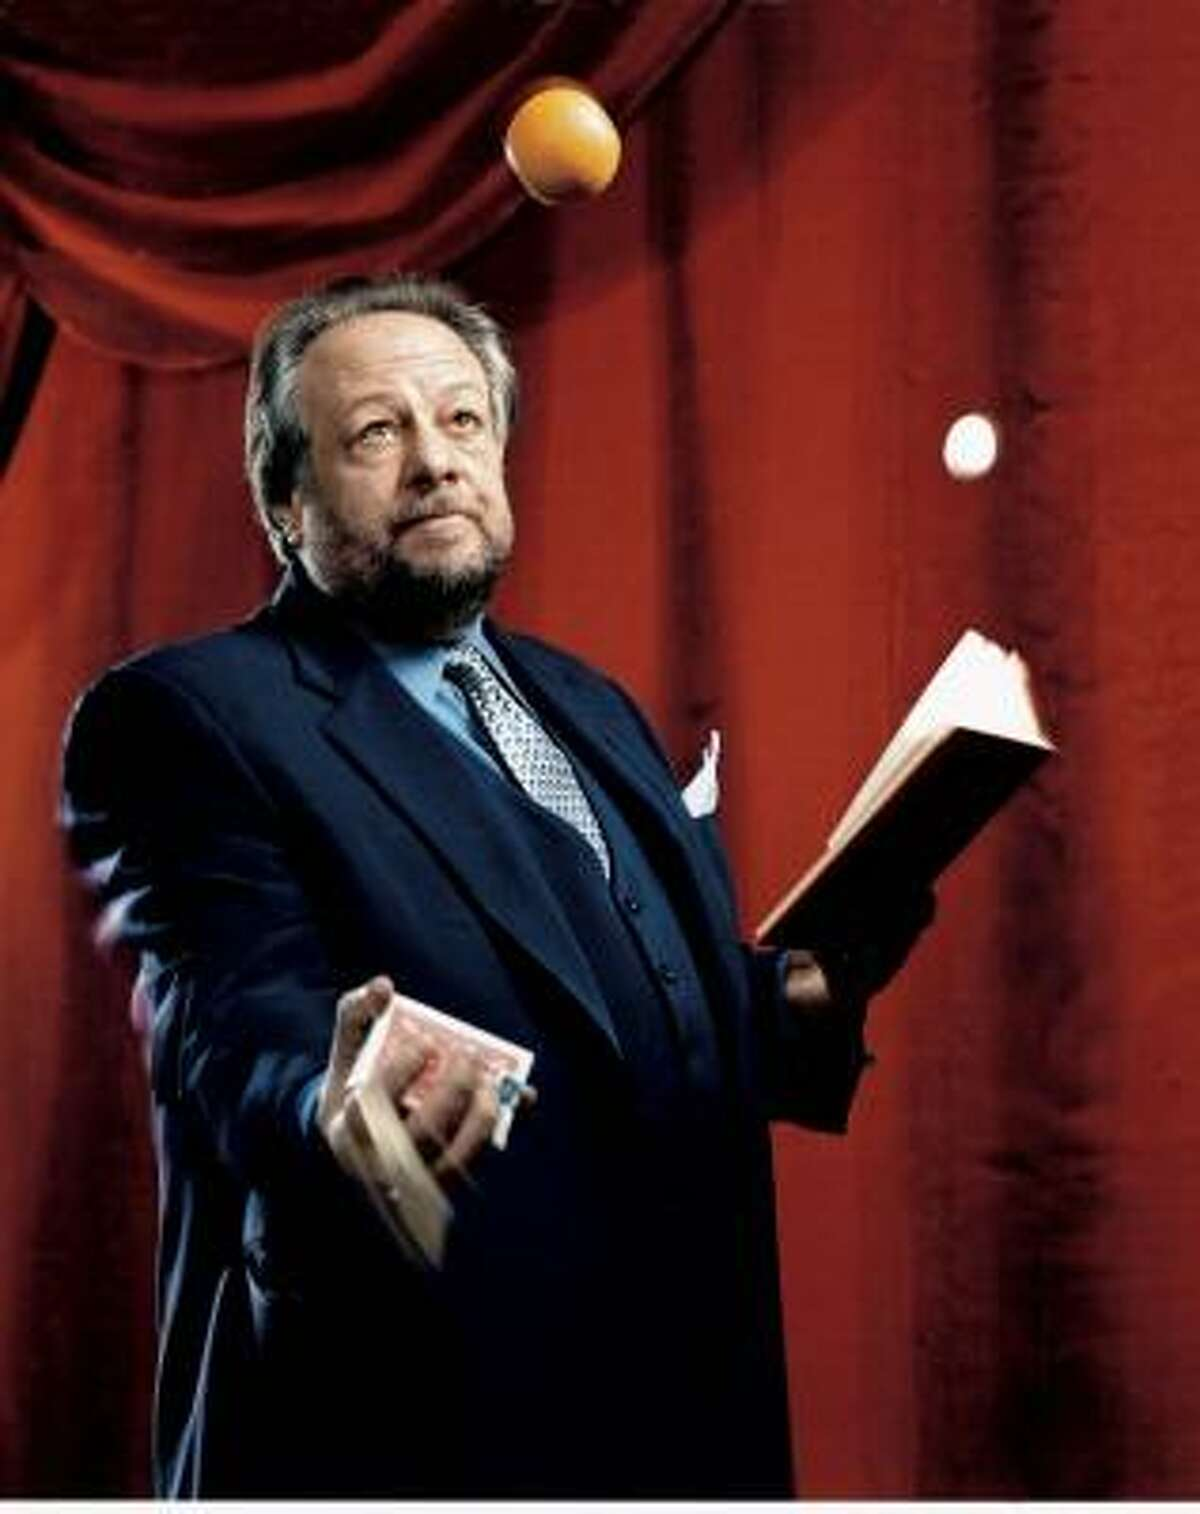 Ricky Jay is perhaps the world's greatest sleight-of-hand artist as well as a leading scholar of prestidigitation and illusion.